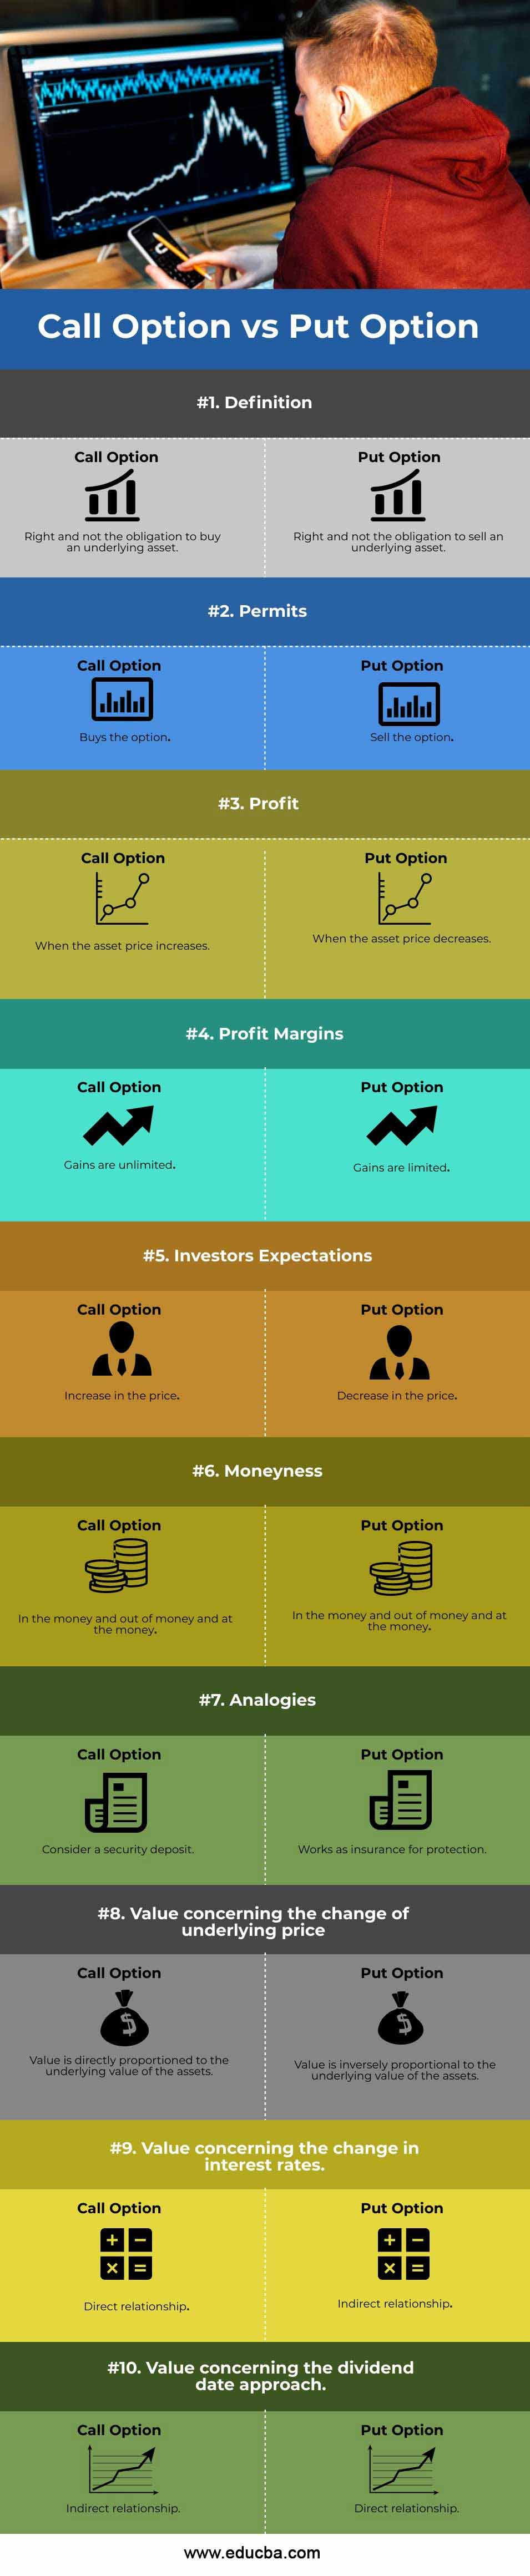 Call-Option-vs-Put-Option-info